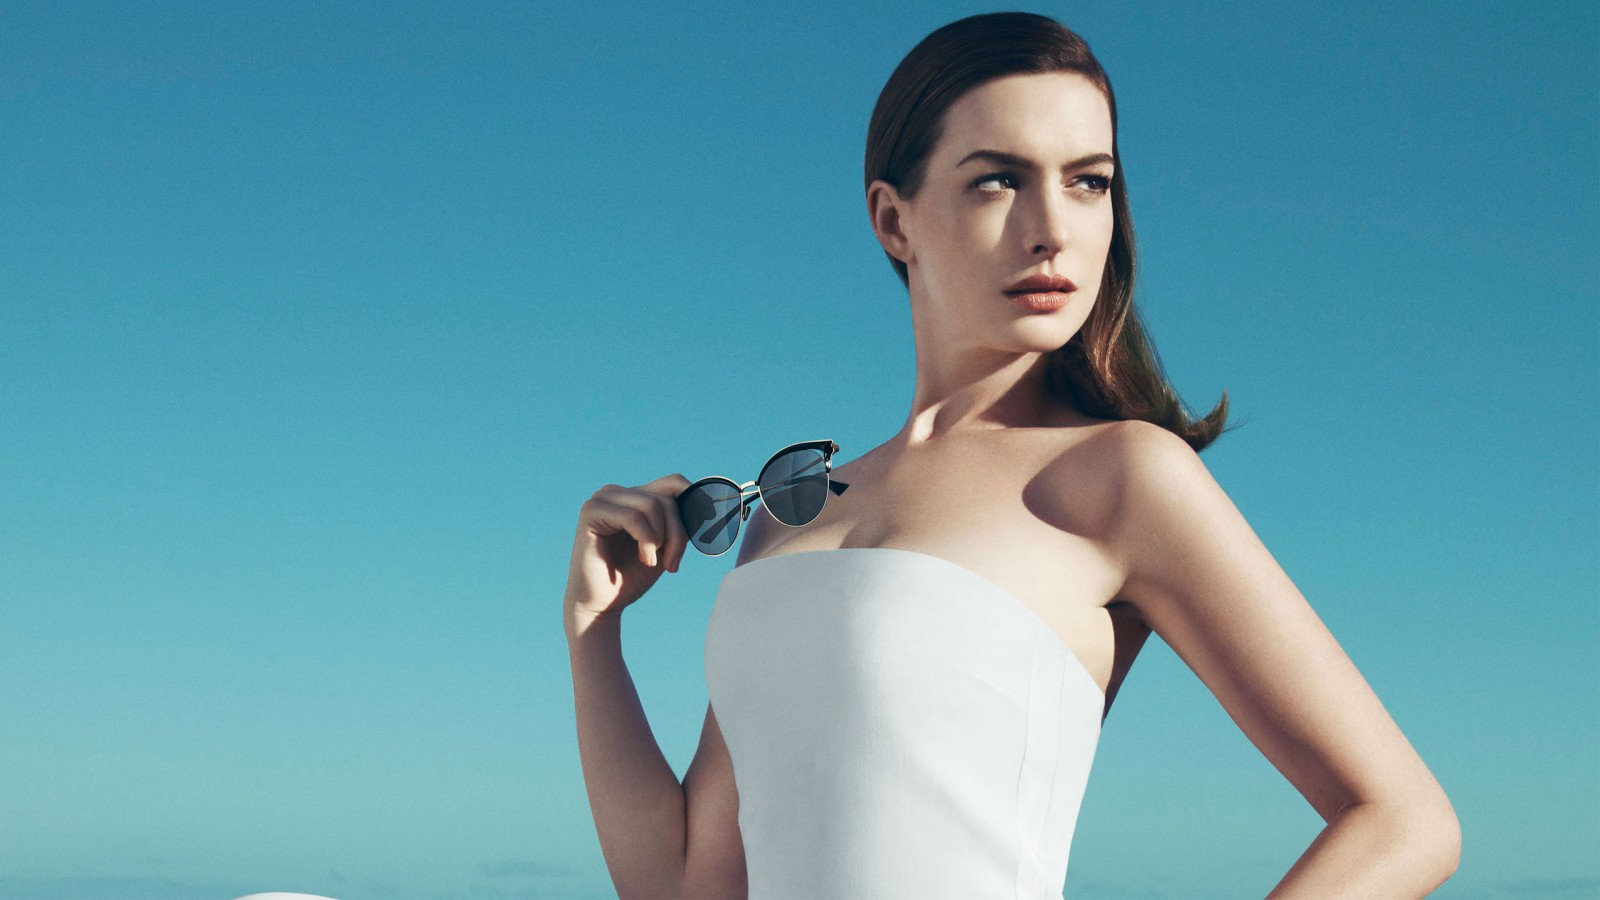 Hd Abstract Wallpapers For Iphone 5 Anne Hathaway 2017 Wallpapers Hd Wallpapers Id 20052